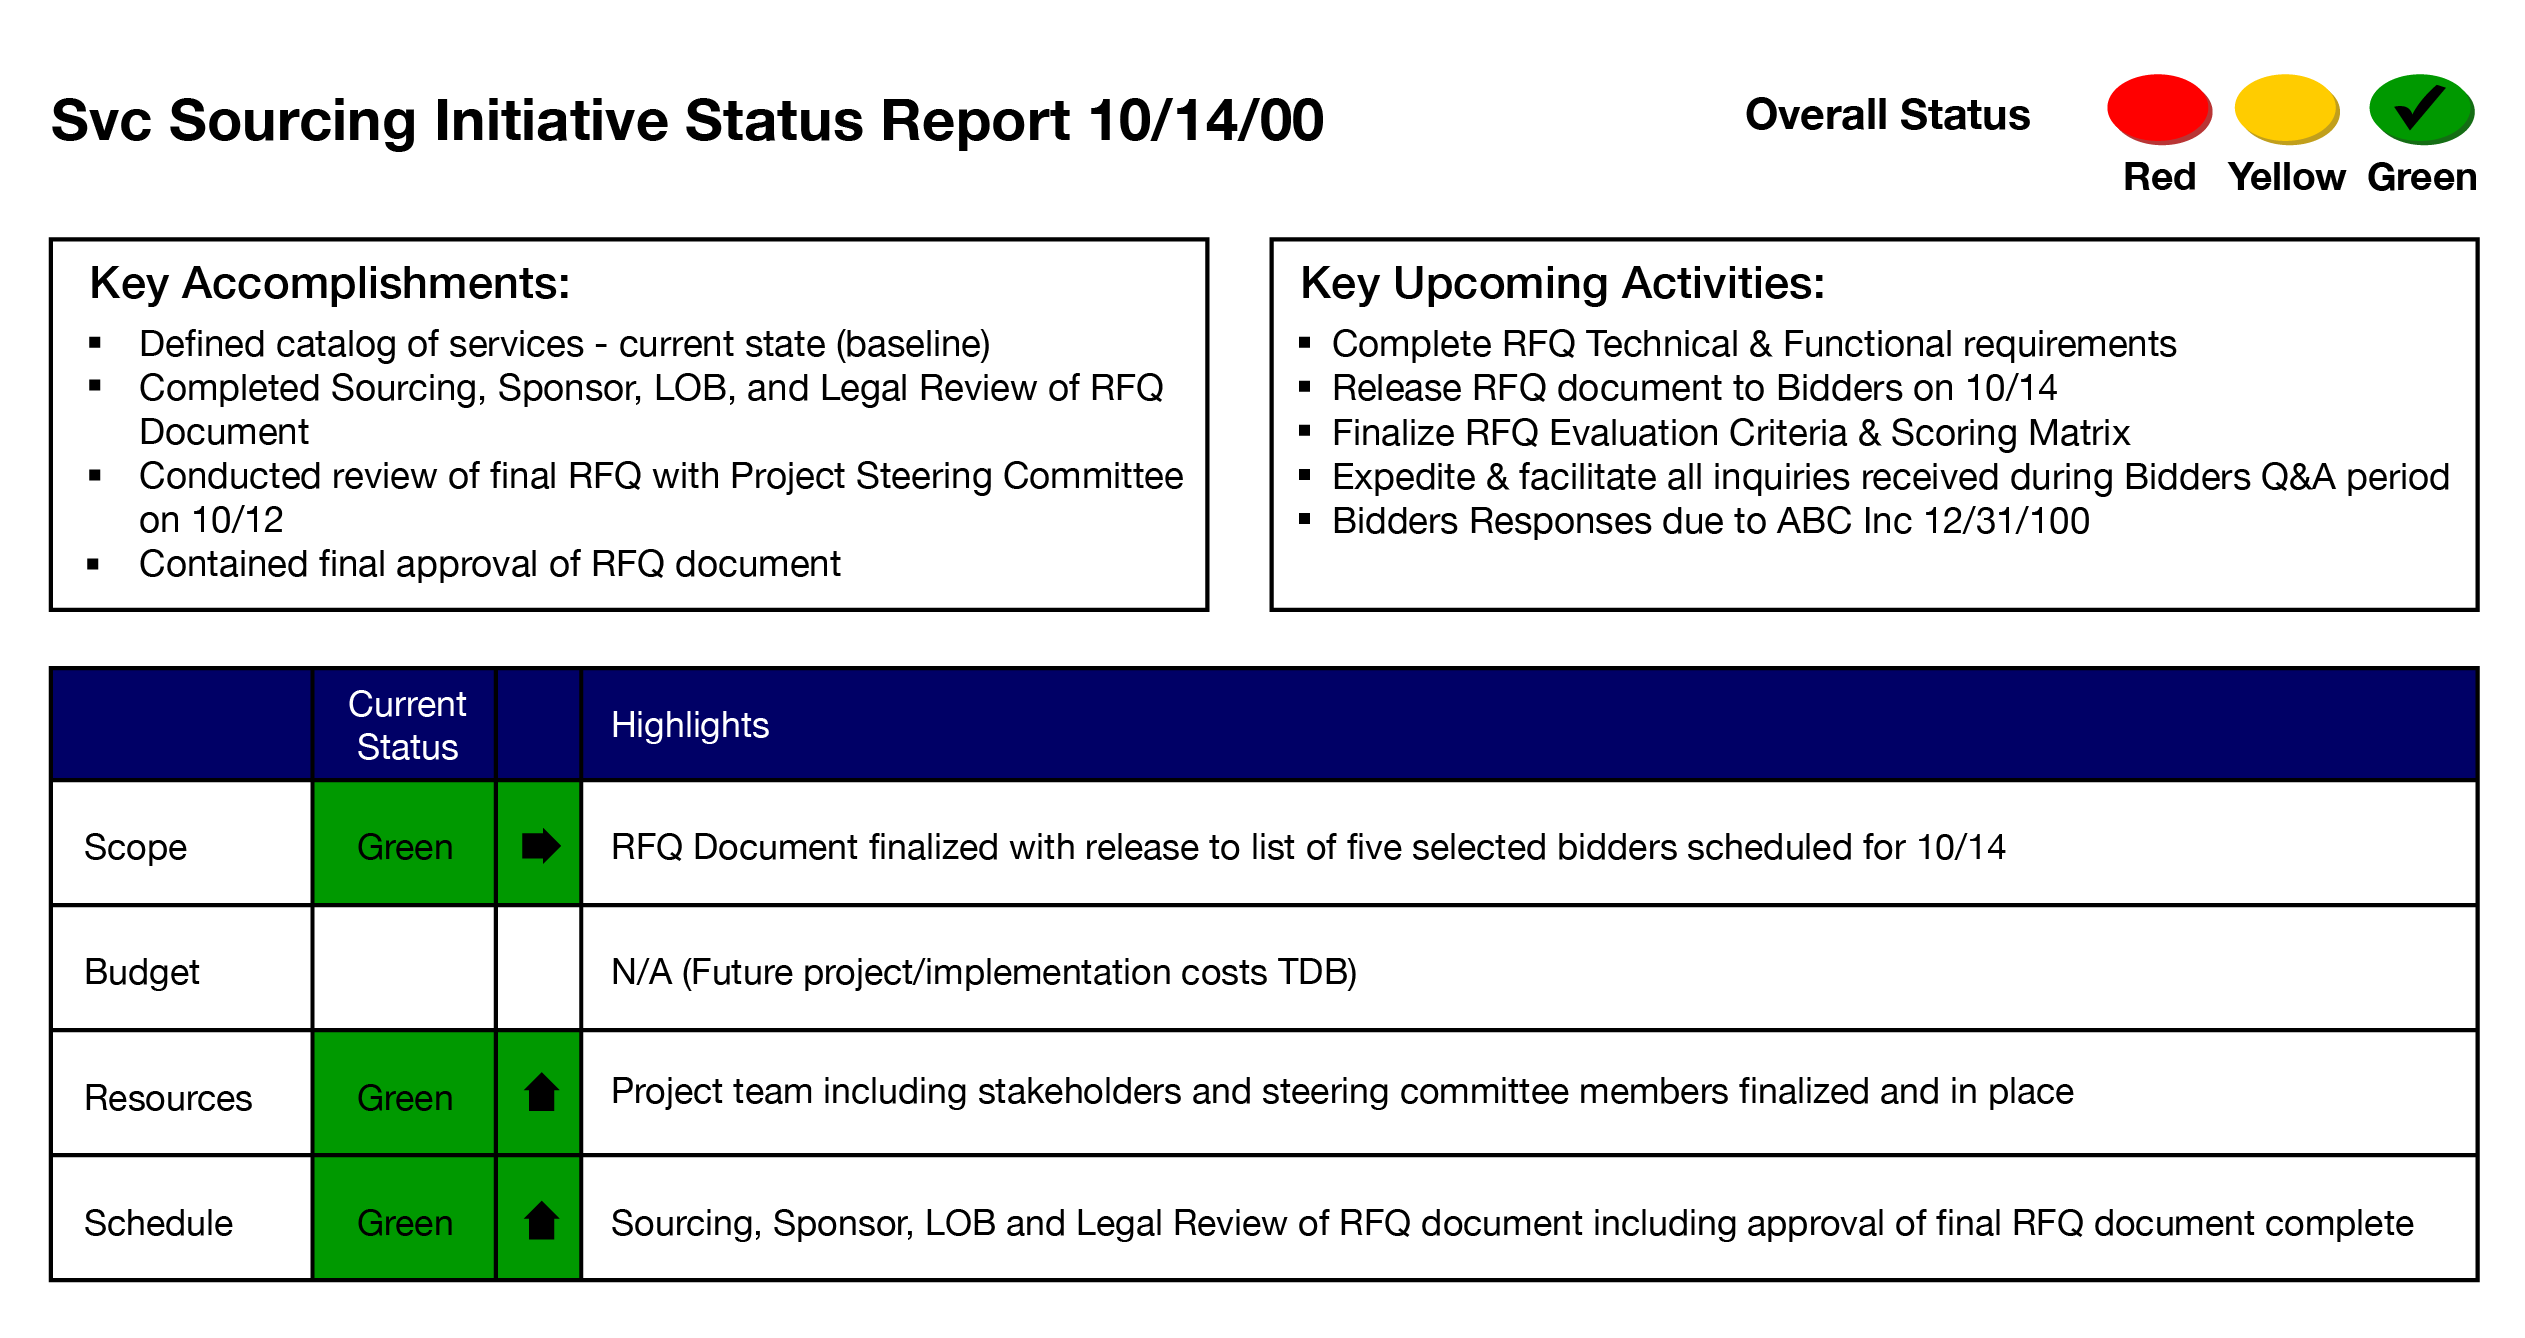 Svc Sourcing Initiative Status Report